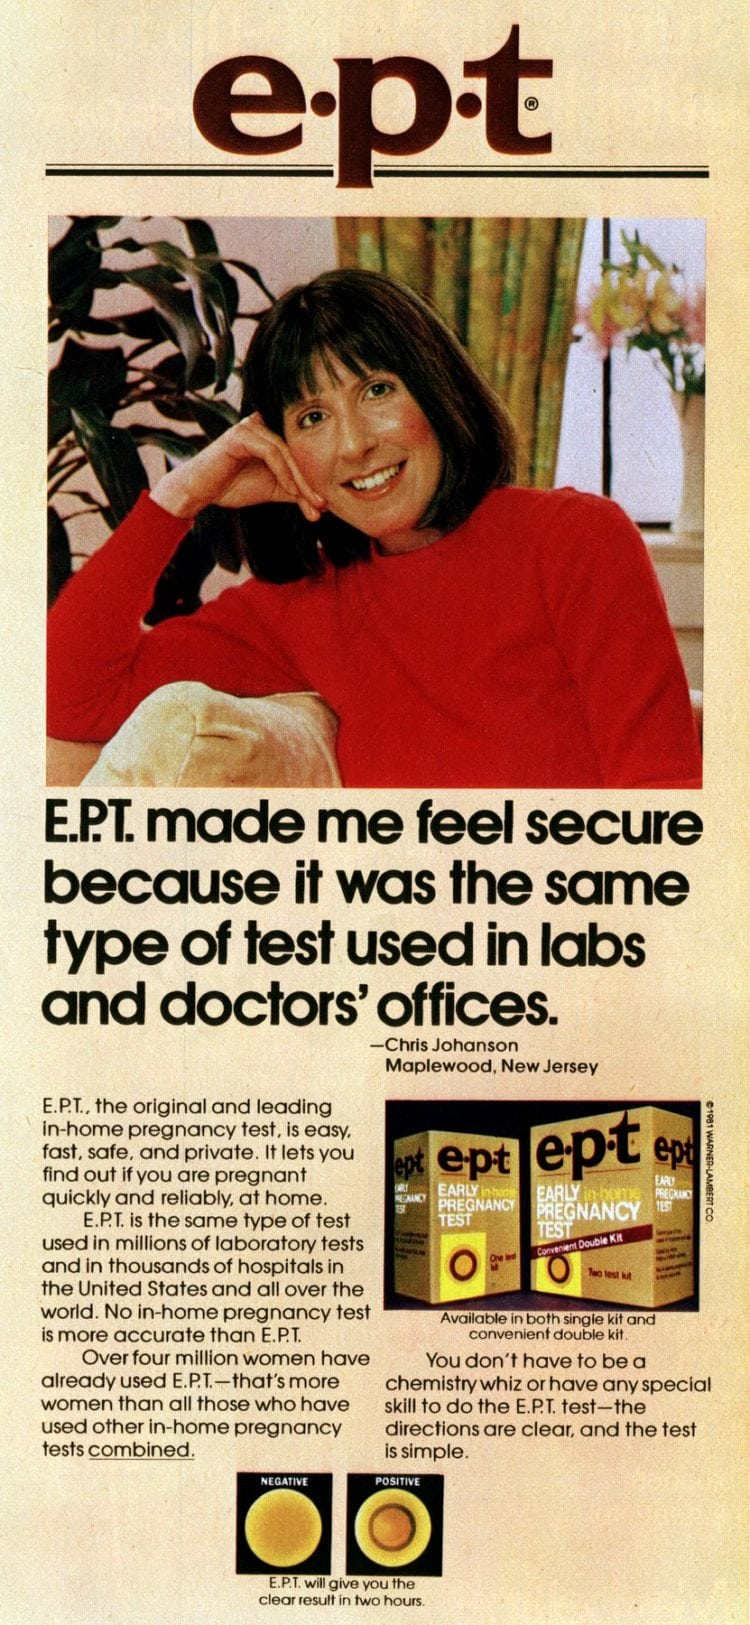 EPT test tube home pregnancy test kits from 1982